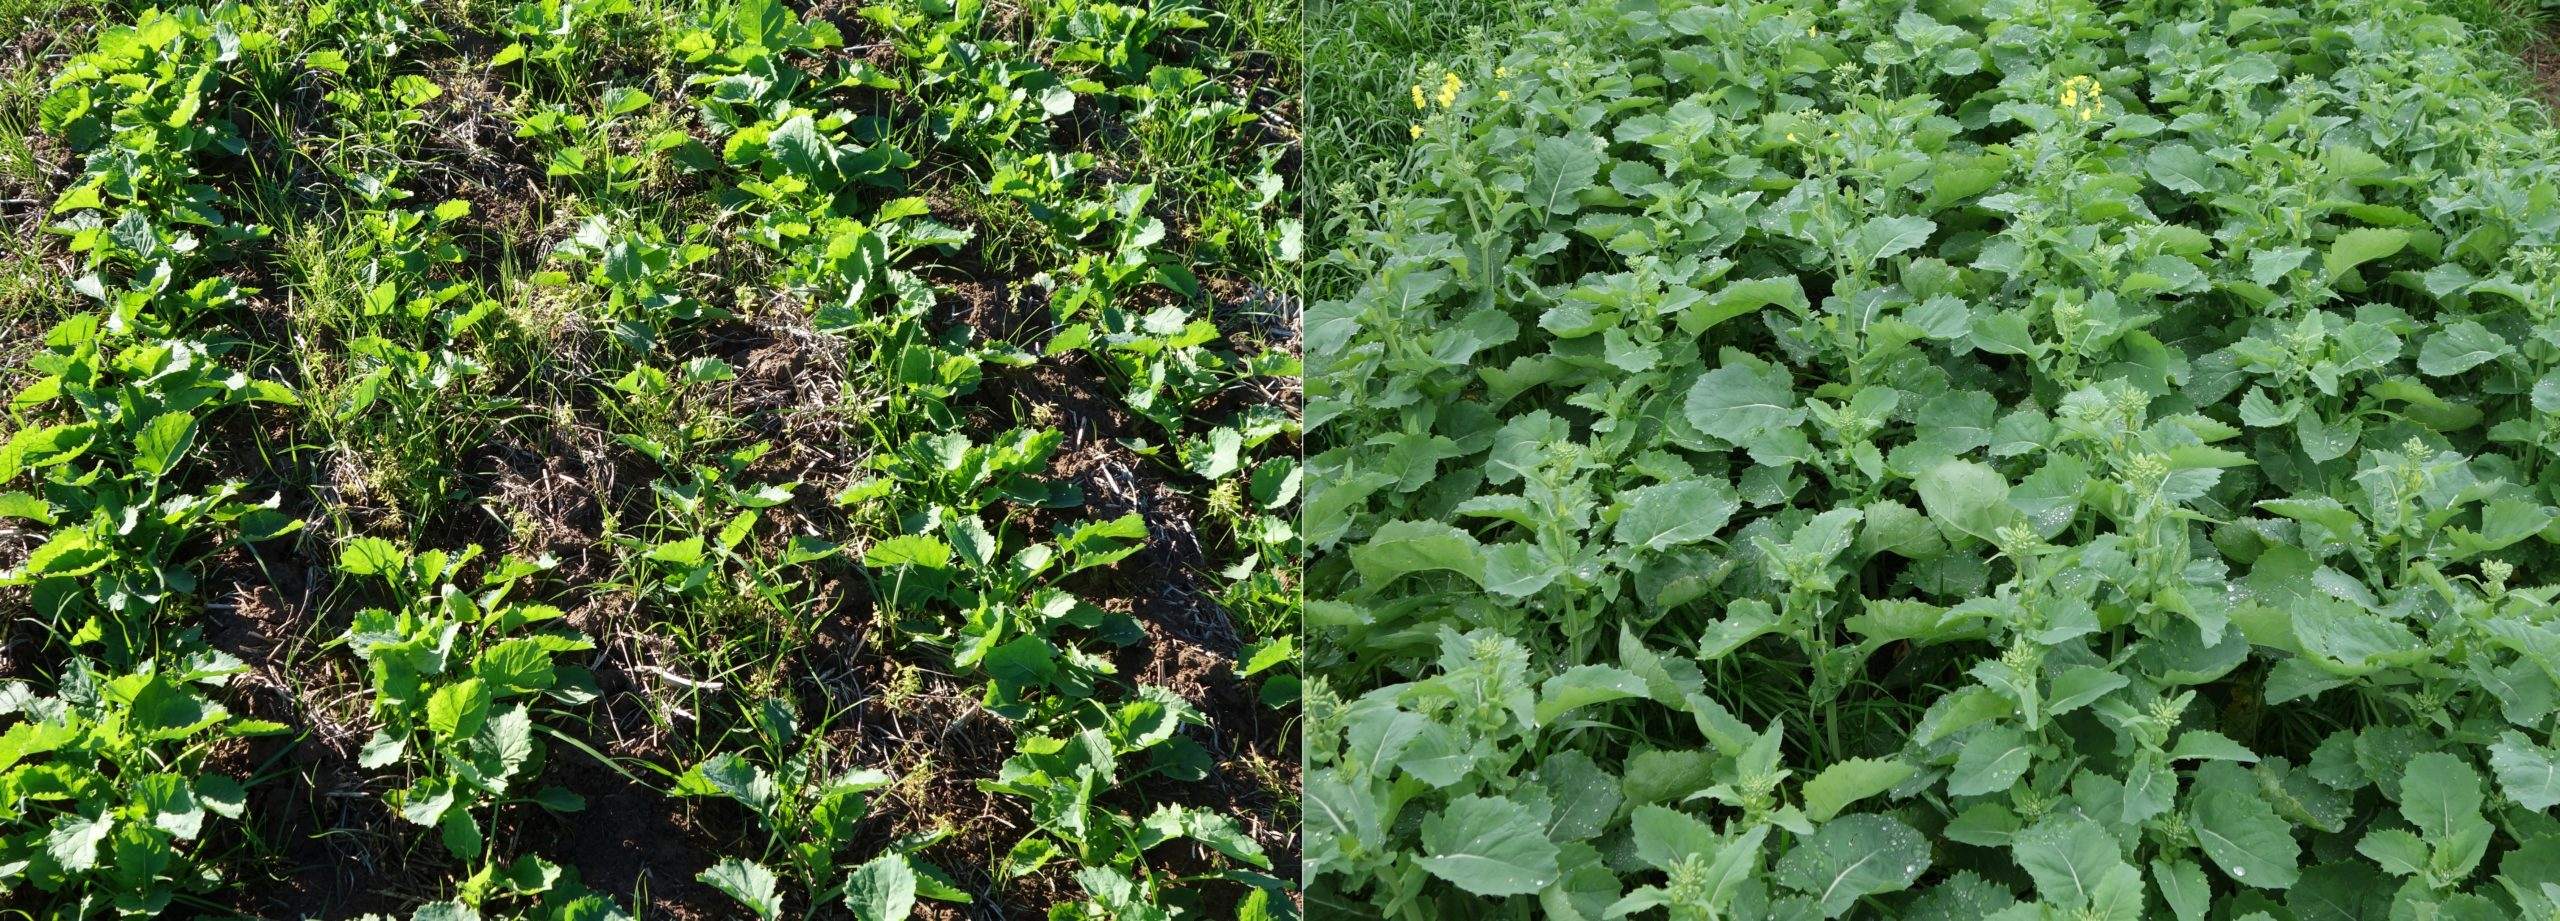 Competitive (right) v non-competitive canola — growers can take advantage of the canola varieties with greater competitive ability.